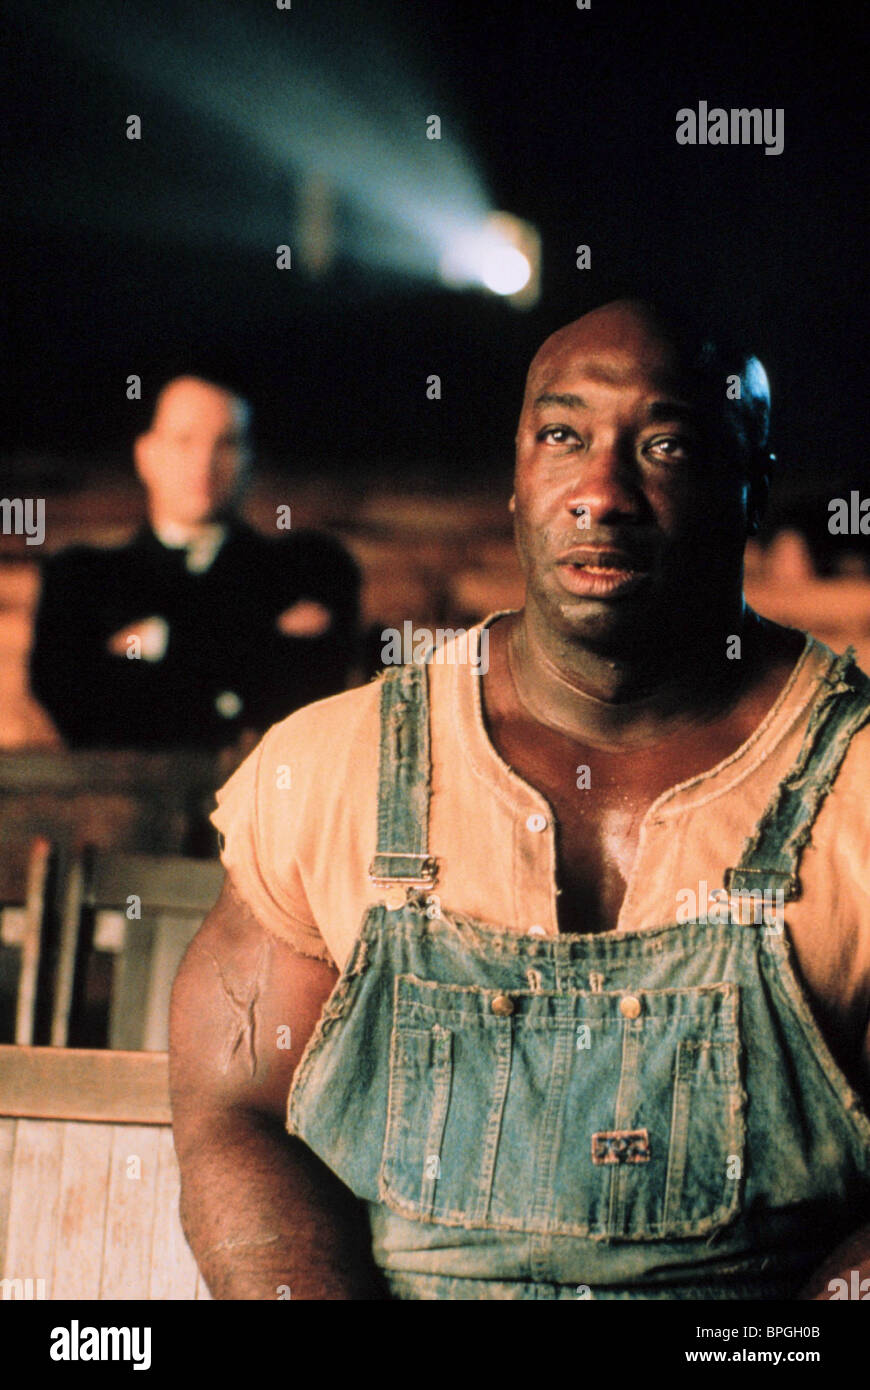 Download Film The Green Mile 1999